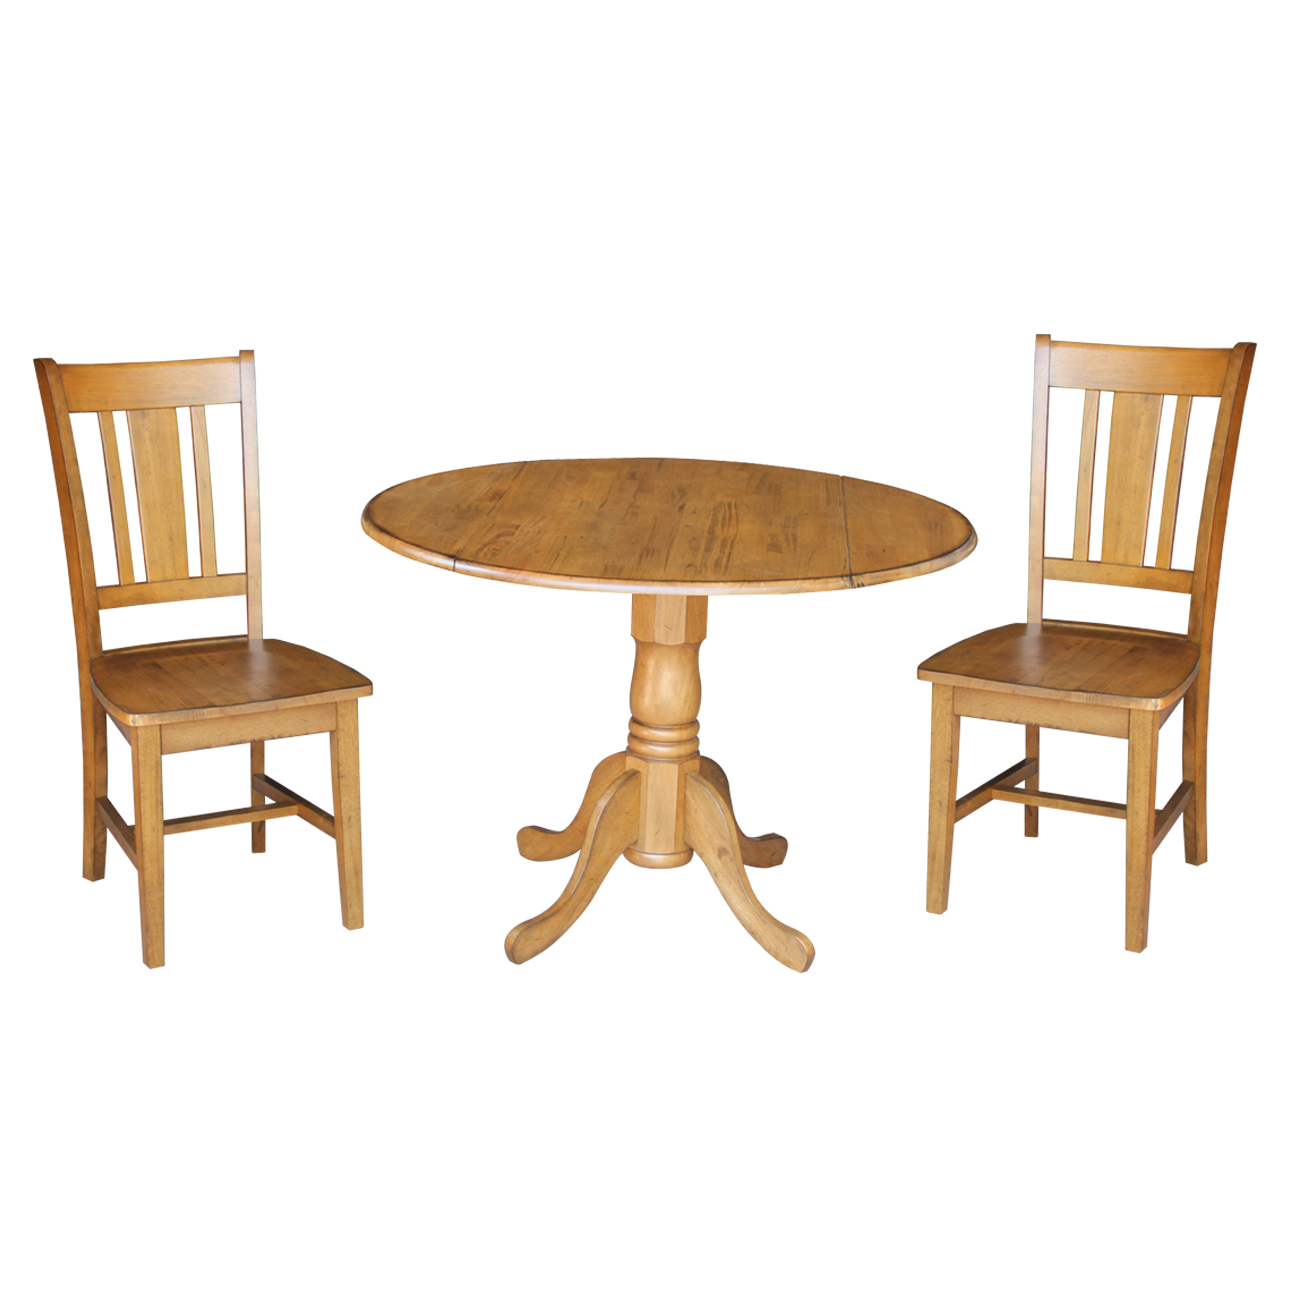 "42"" Dual Drop Leaf Table and 2 San Remo Chairs in Pecan - 3 Piece Set"